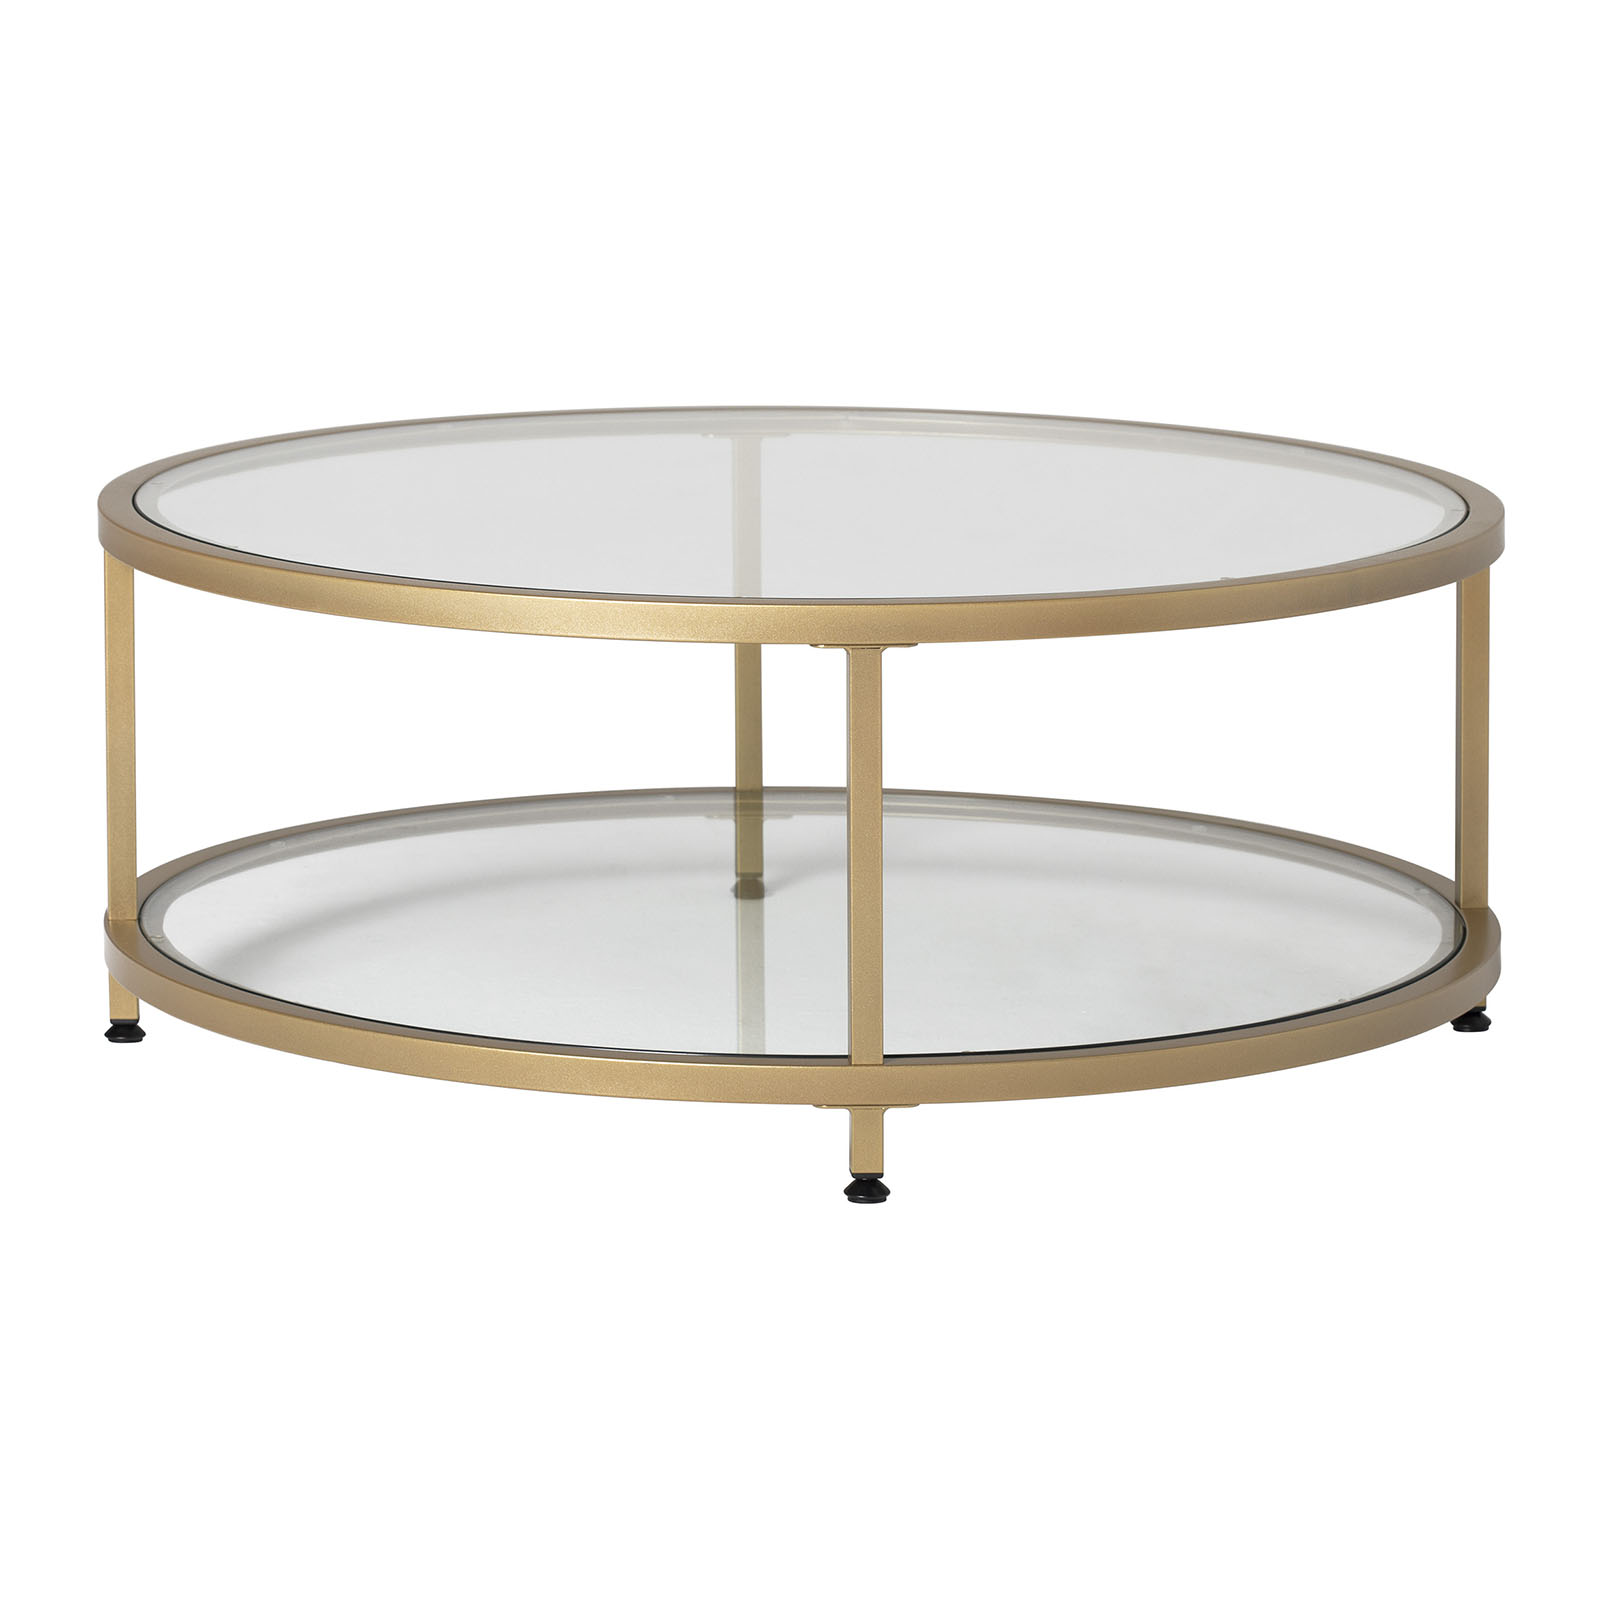 71032 Camber Round Coffee Table